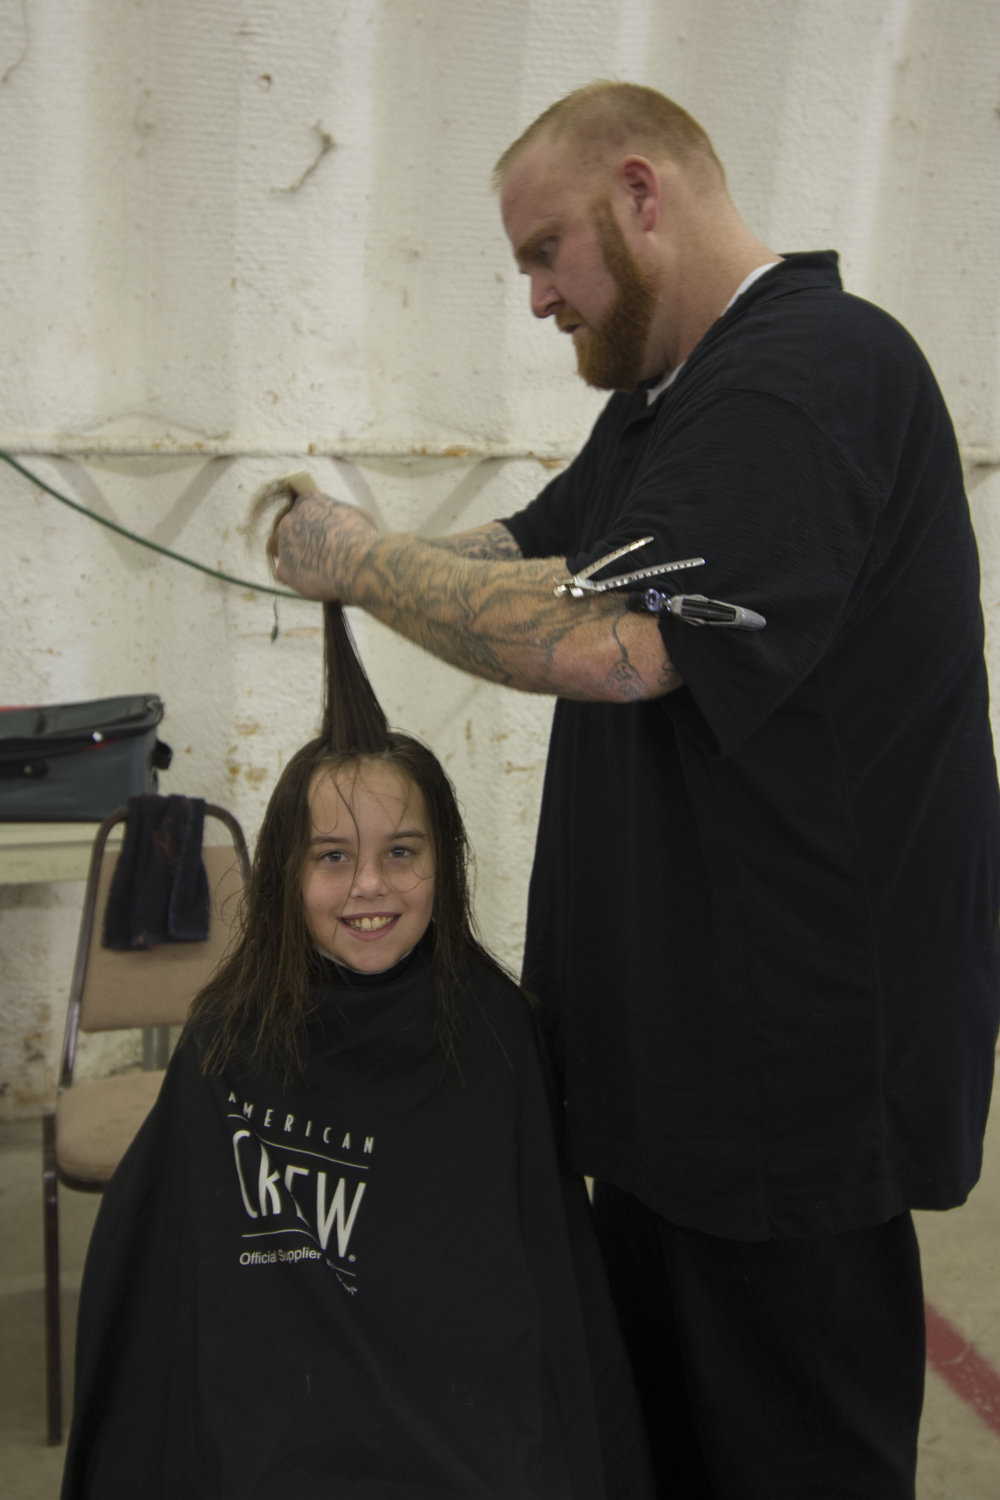 Thank you to the stylists at the Spivey Lane Salon in Roanoke for donating your services and providing free haircuts.